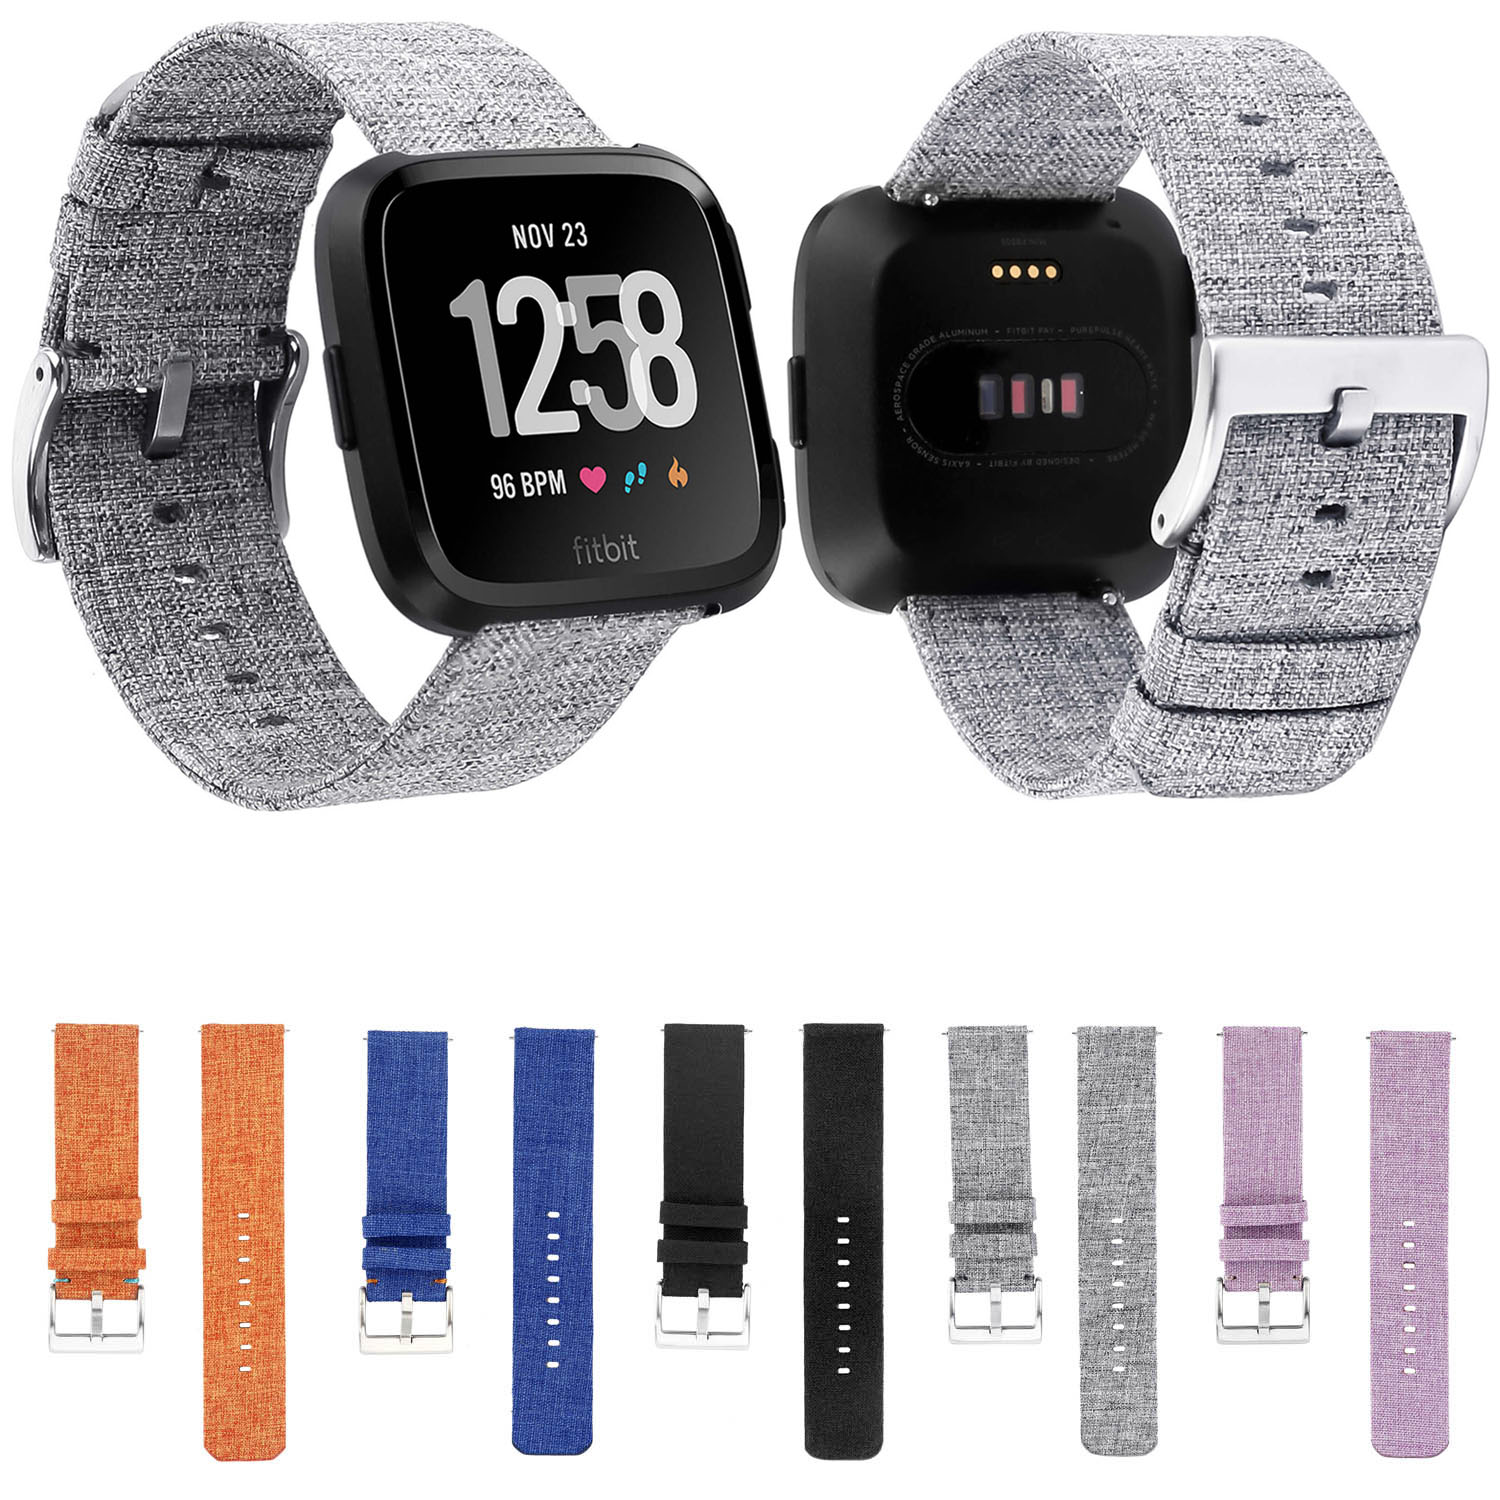 Quick Release Woven Nylon Canvas Watchband Buckle Strap Wristband for Fitbit Versa Smartwatch Watch Band Wrist Bracelet quick release nylon plastic waist holster buckle for usp black